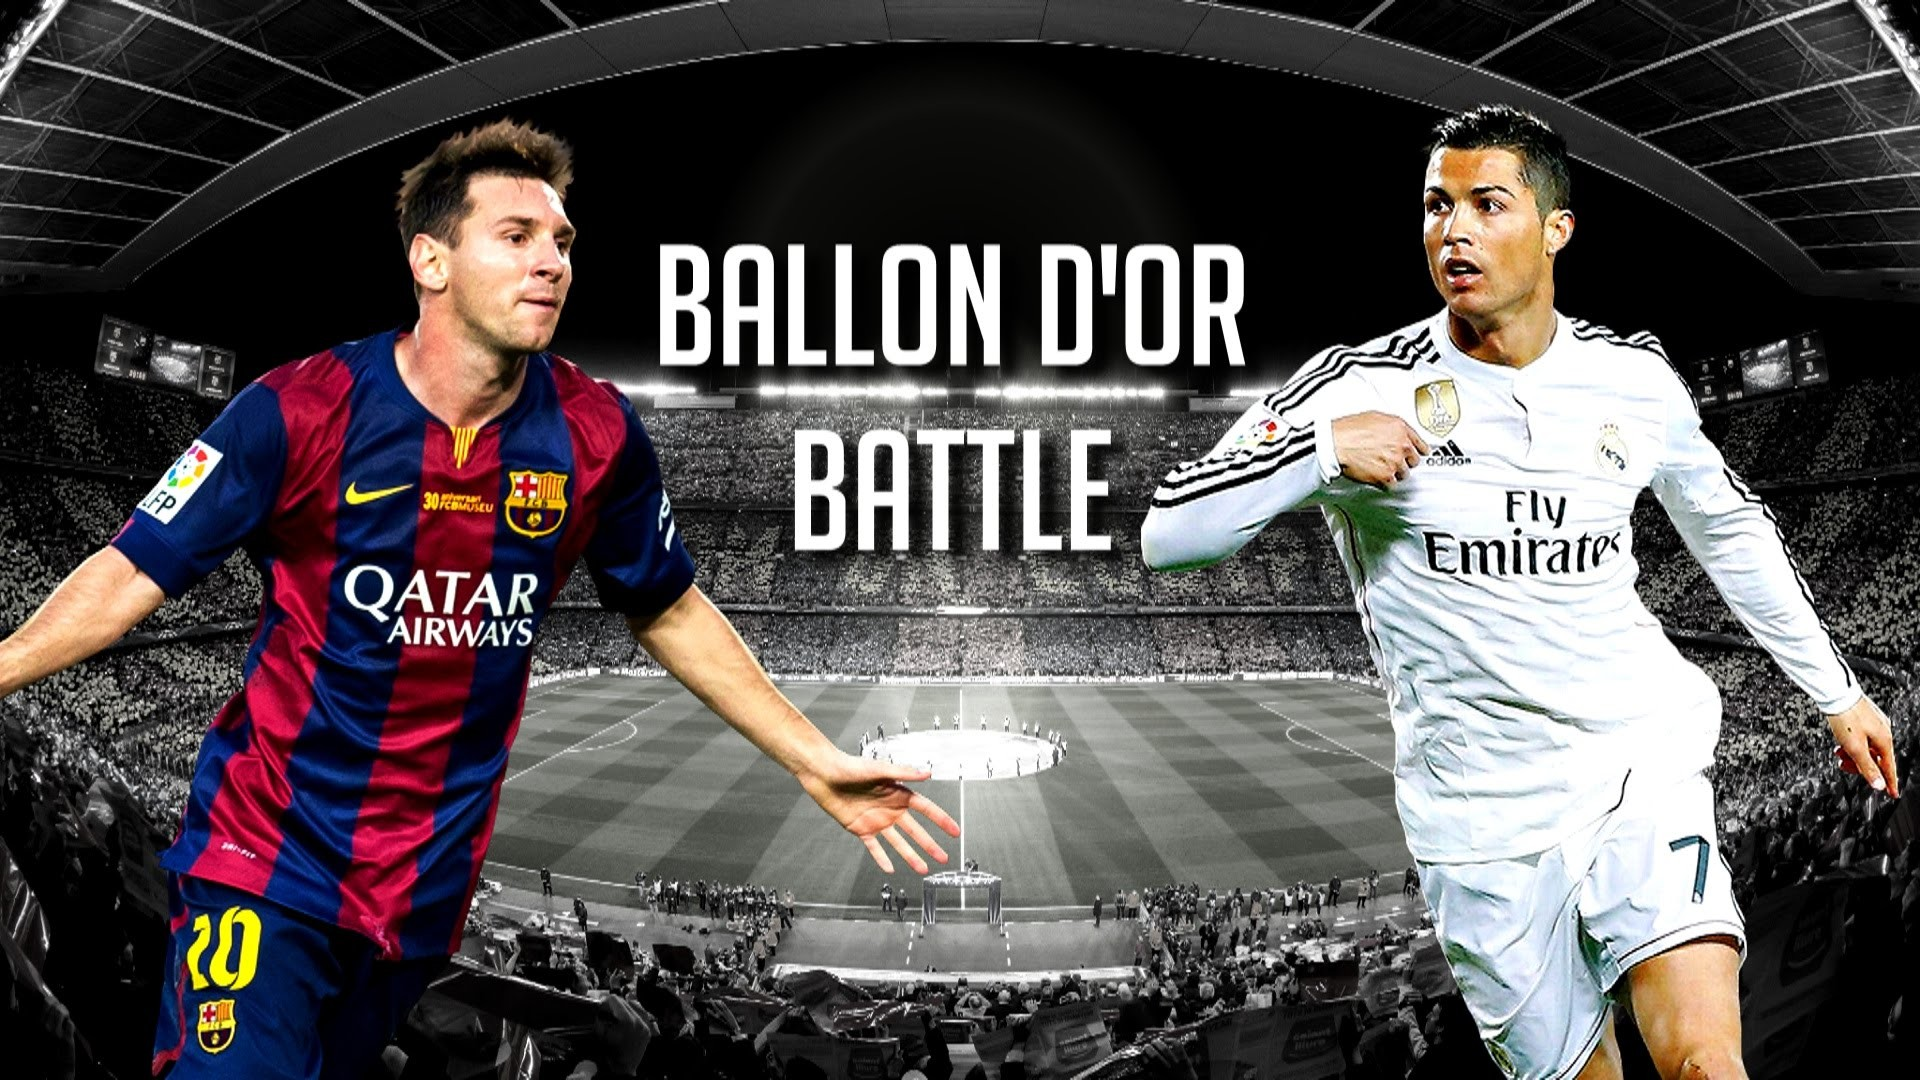 1920x1080 Cristiano Ronaldo vs Lionel Messi ○ Ballon D'Or Battle 2015 | 1080p HD